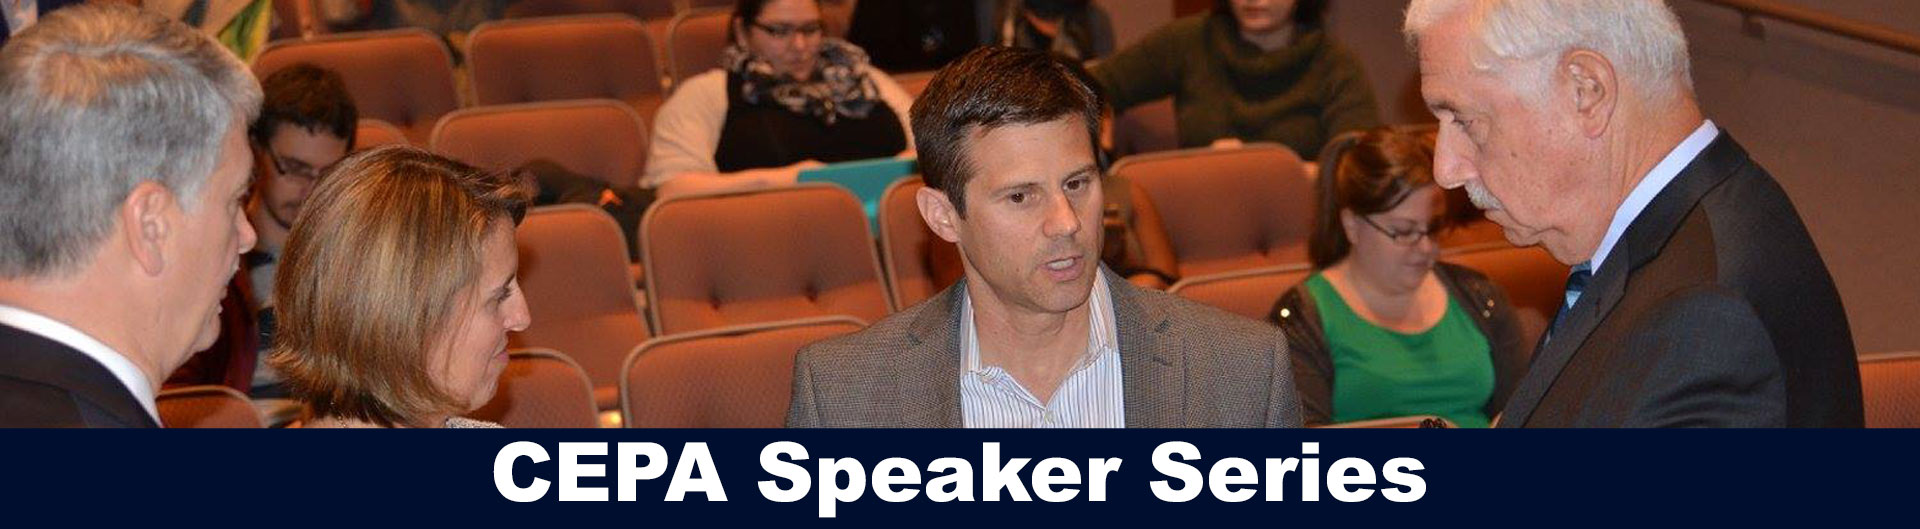 Casey Cobb at CEPA speaker series event